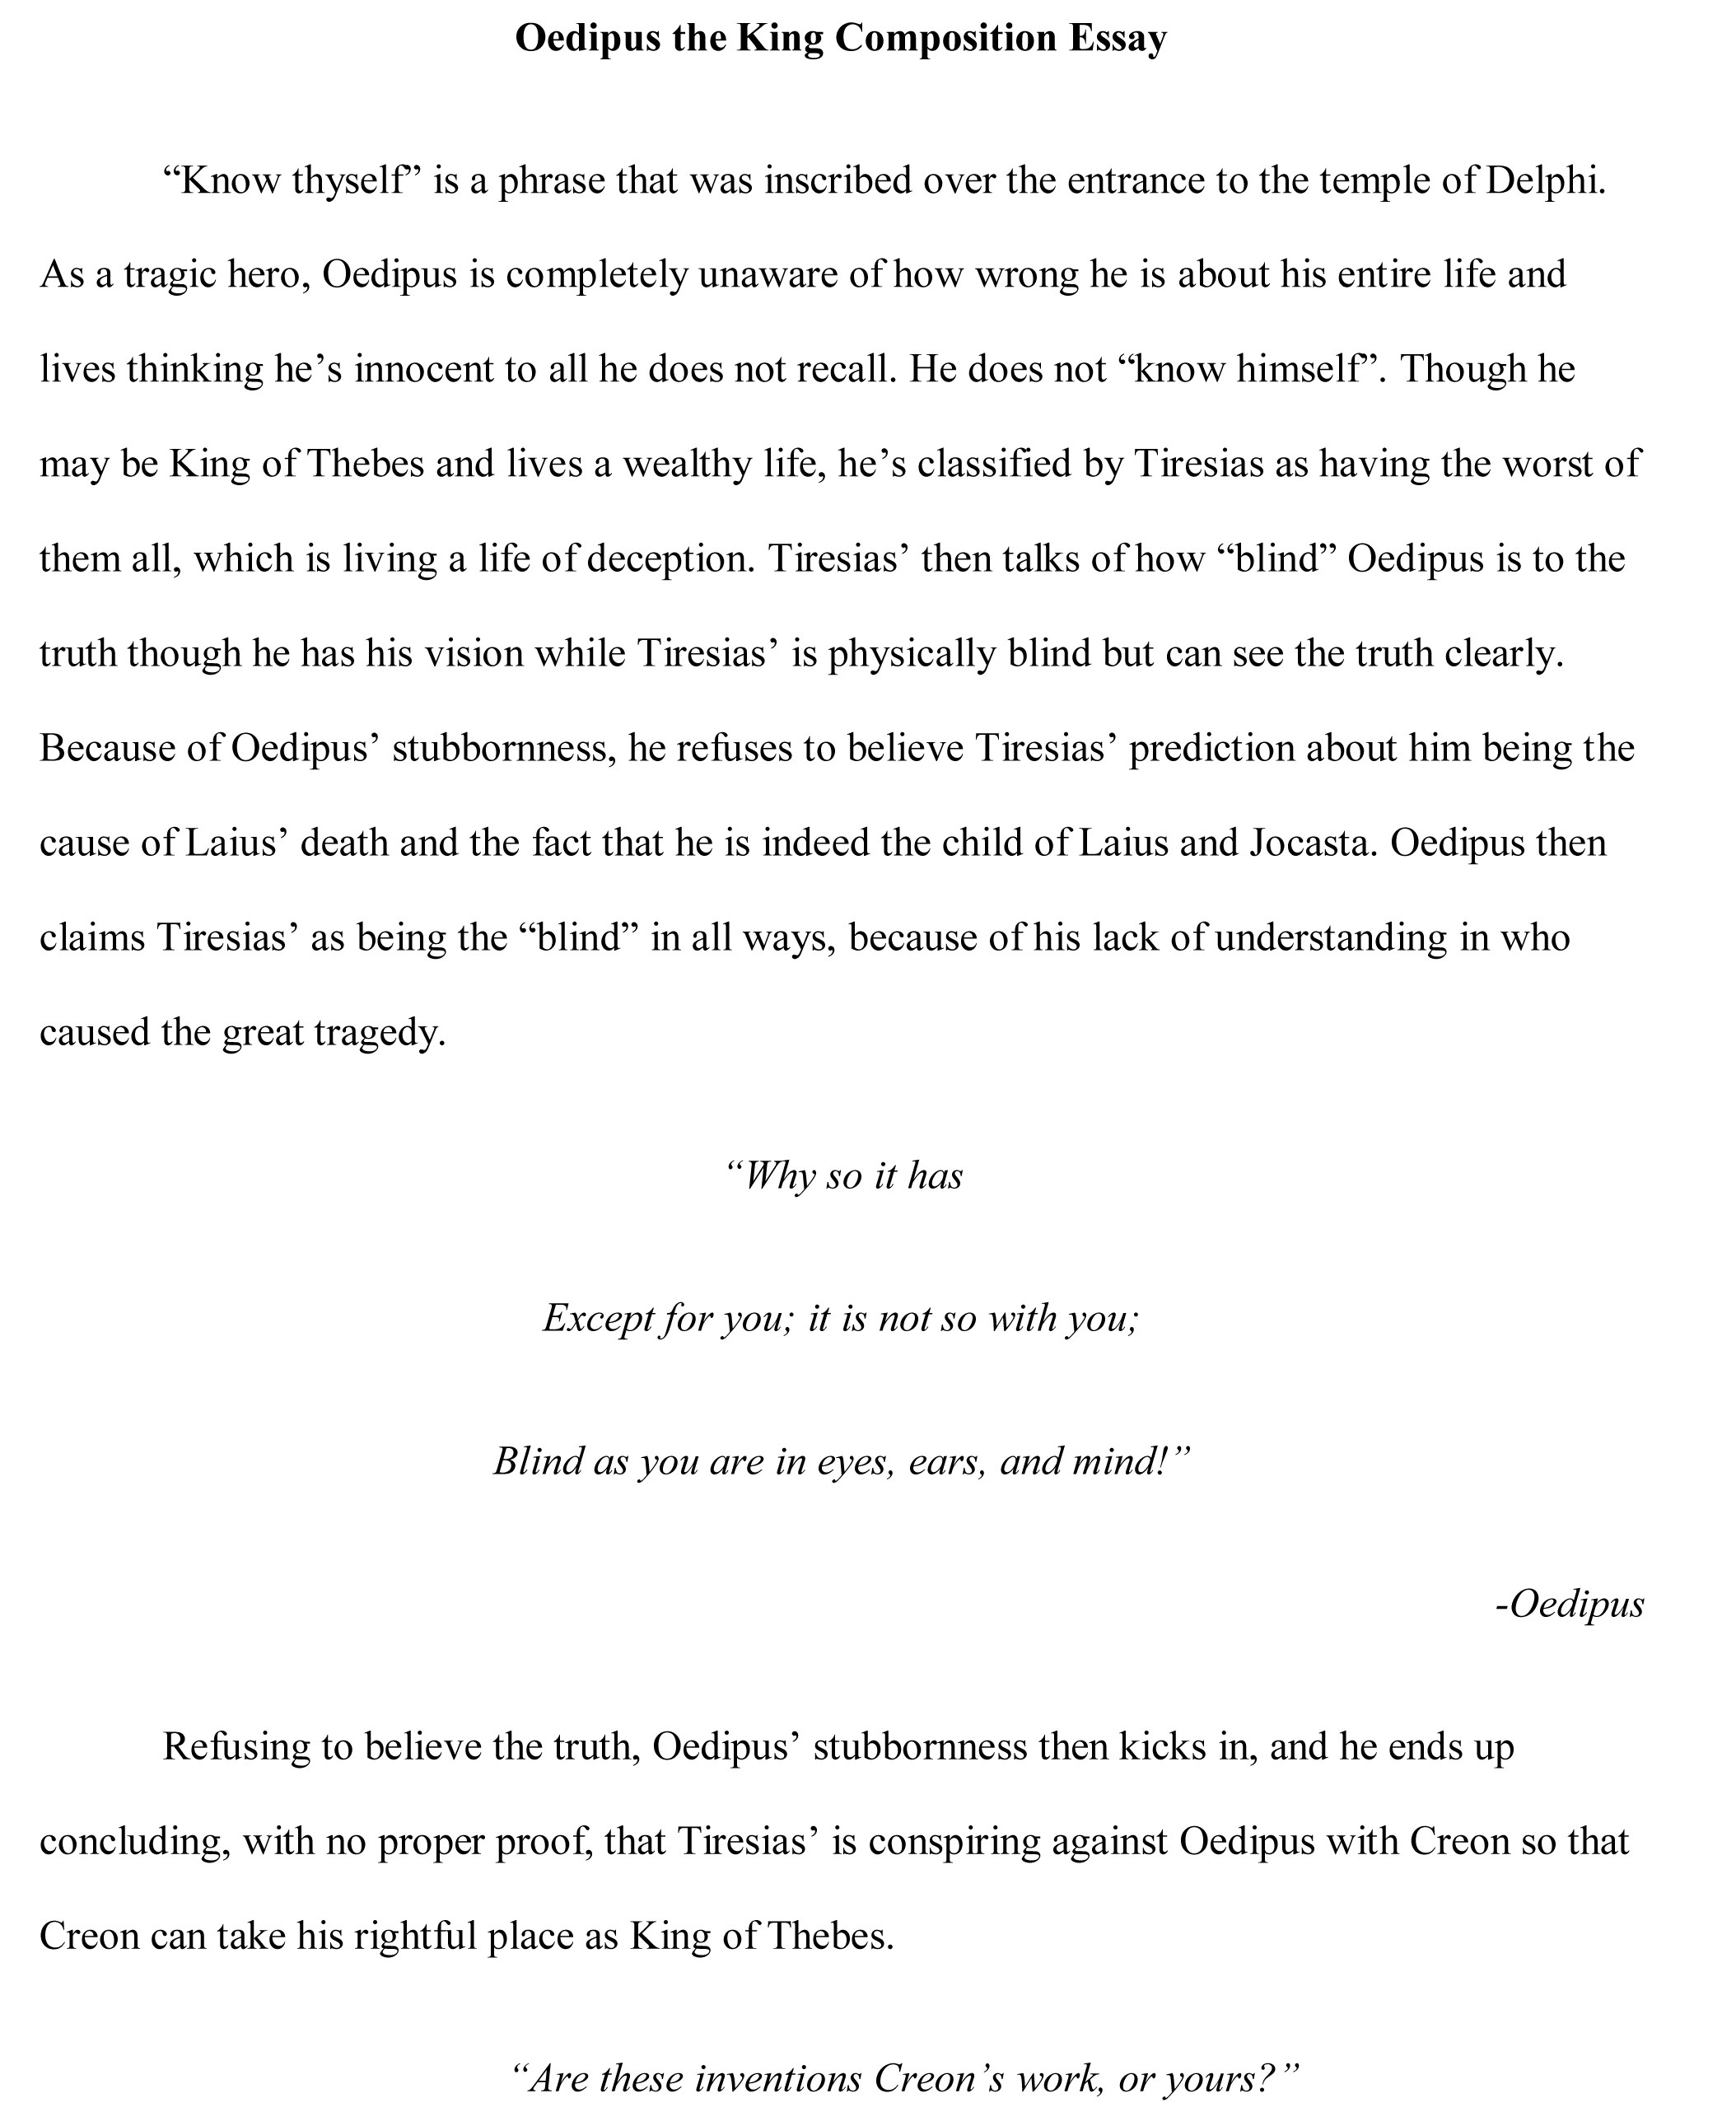 003 Essay Example Synthesis Paper Topic Ideas English For An Causal Argument Oedipus Free S Argumentative Rogerian Middle School Controversial Sentence College Students Good Best Topics High Outline Format On Immigration Full